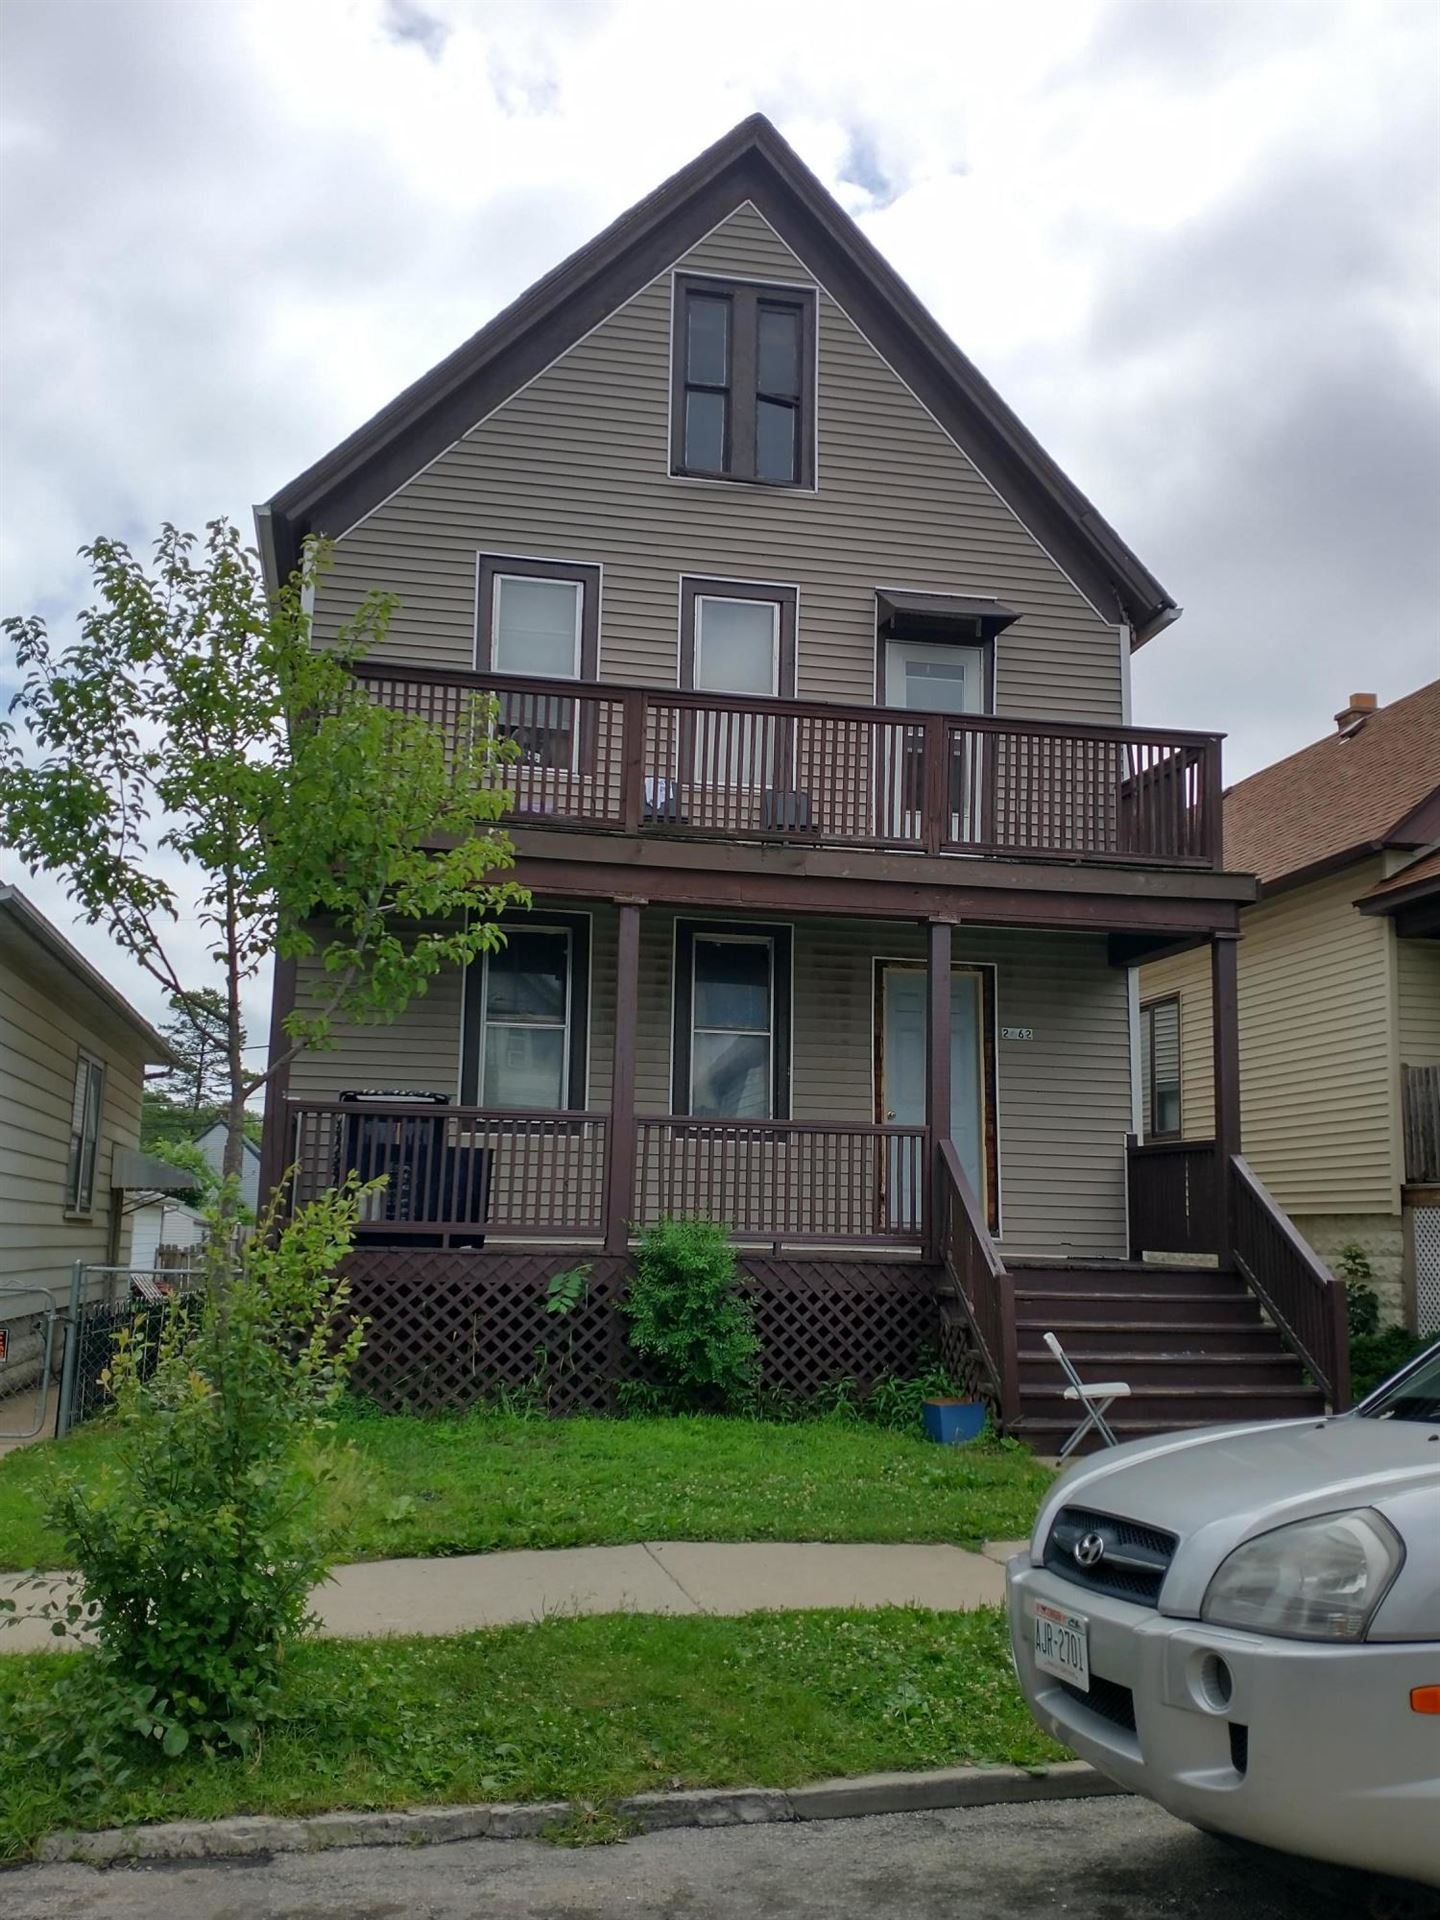 2662 S 9th St, Milwaukee, WI 53215 - #: 1699543